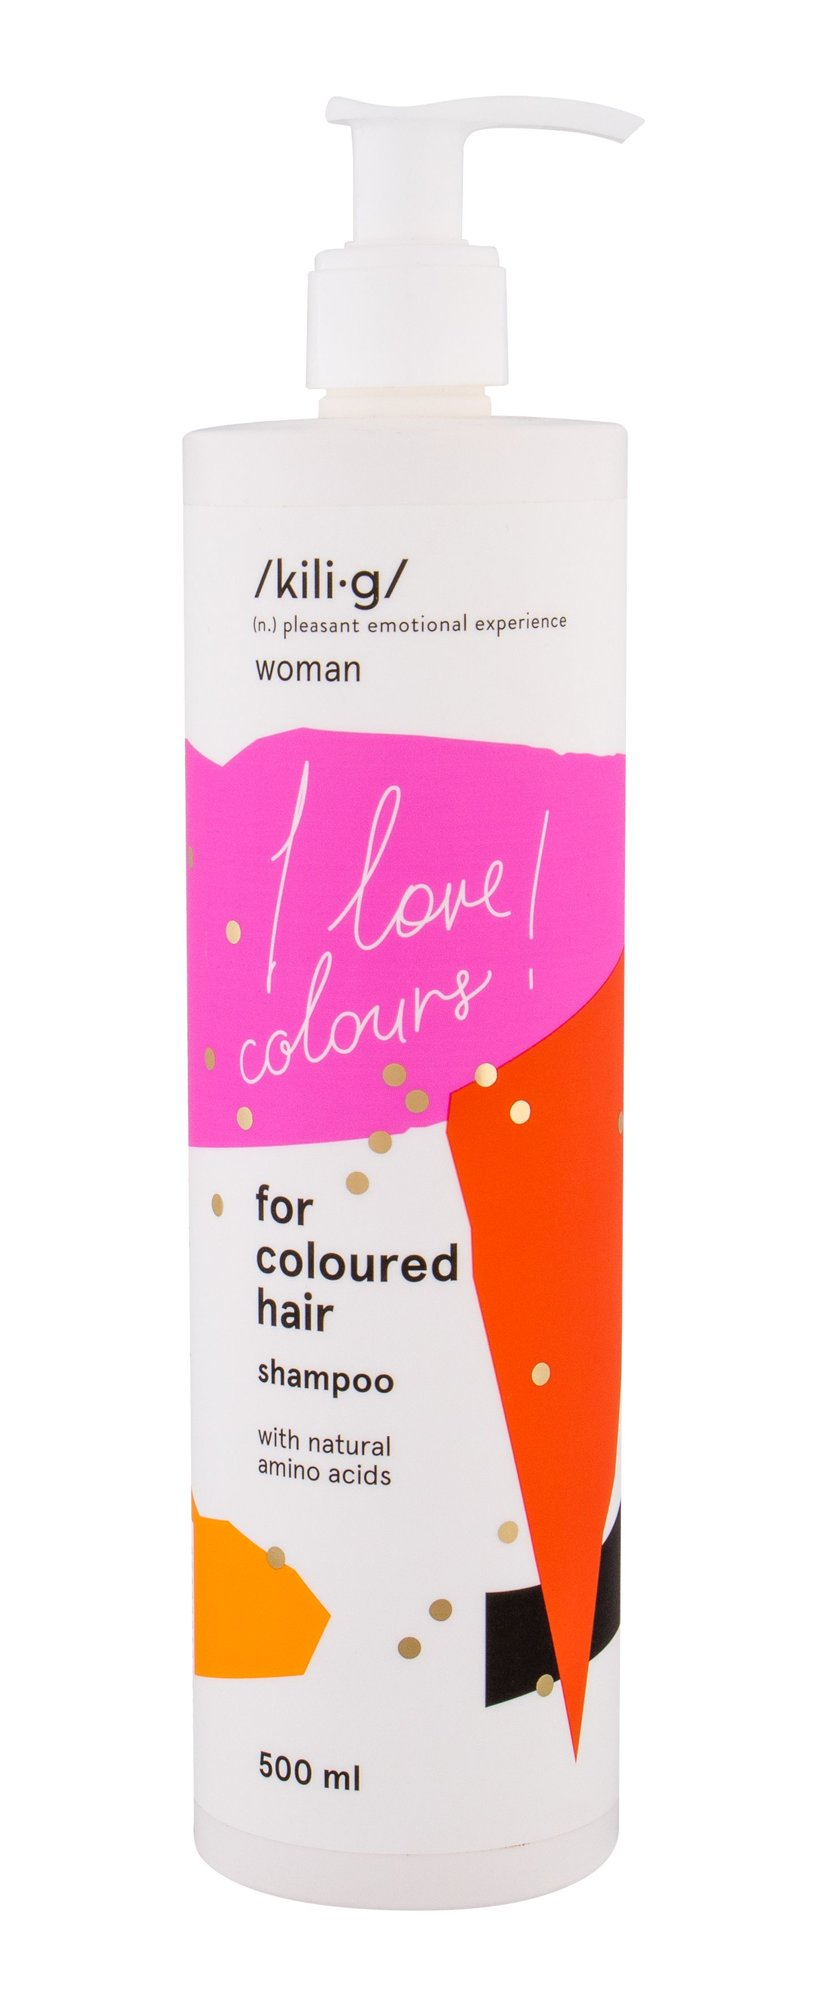 kili·g woman for coloured hair Shampoo 500ml